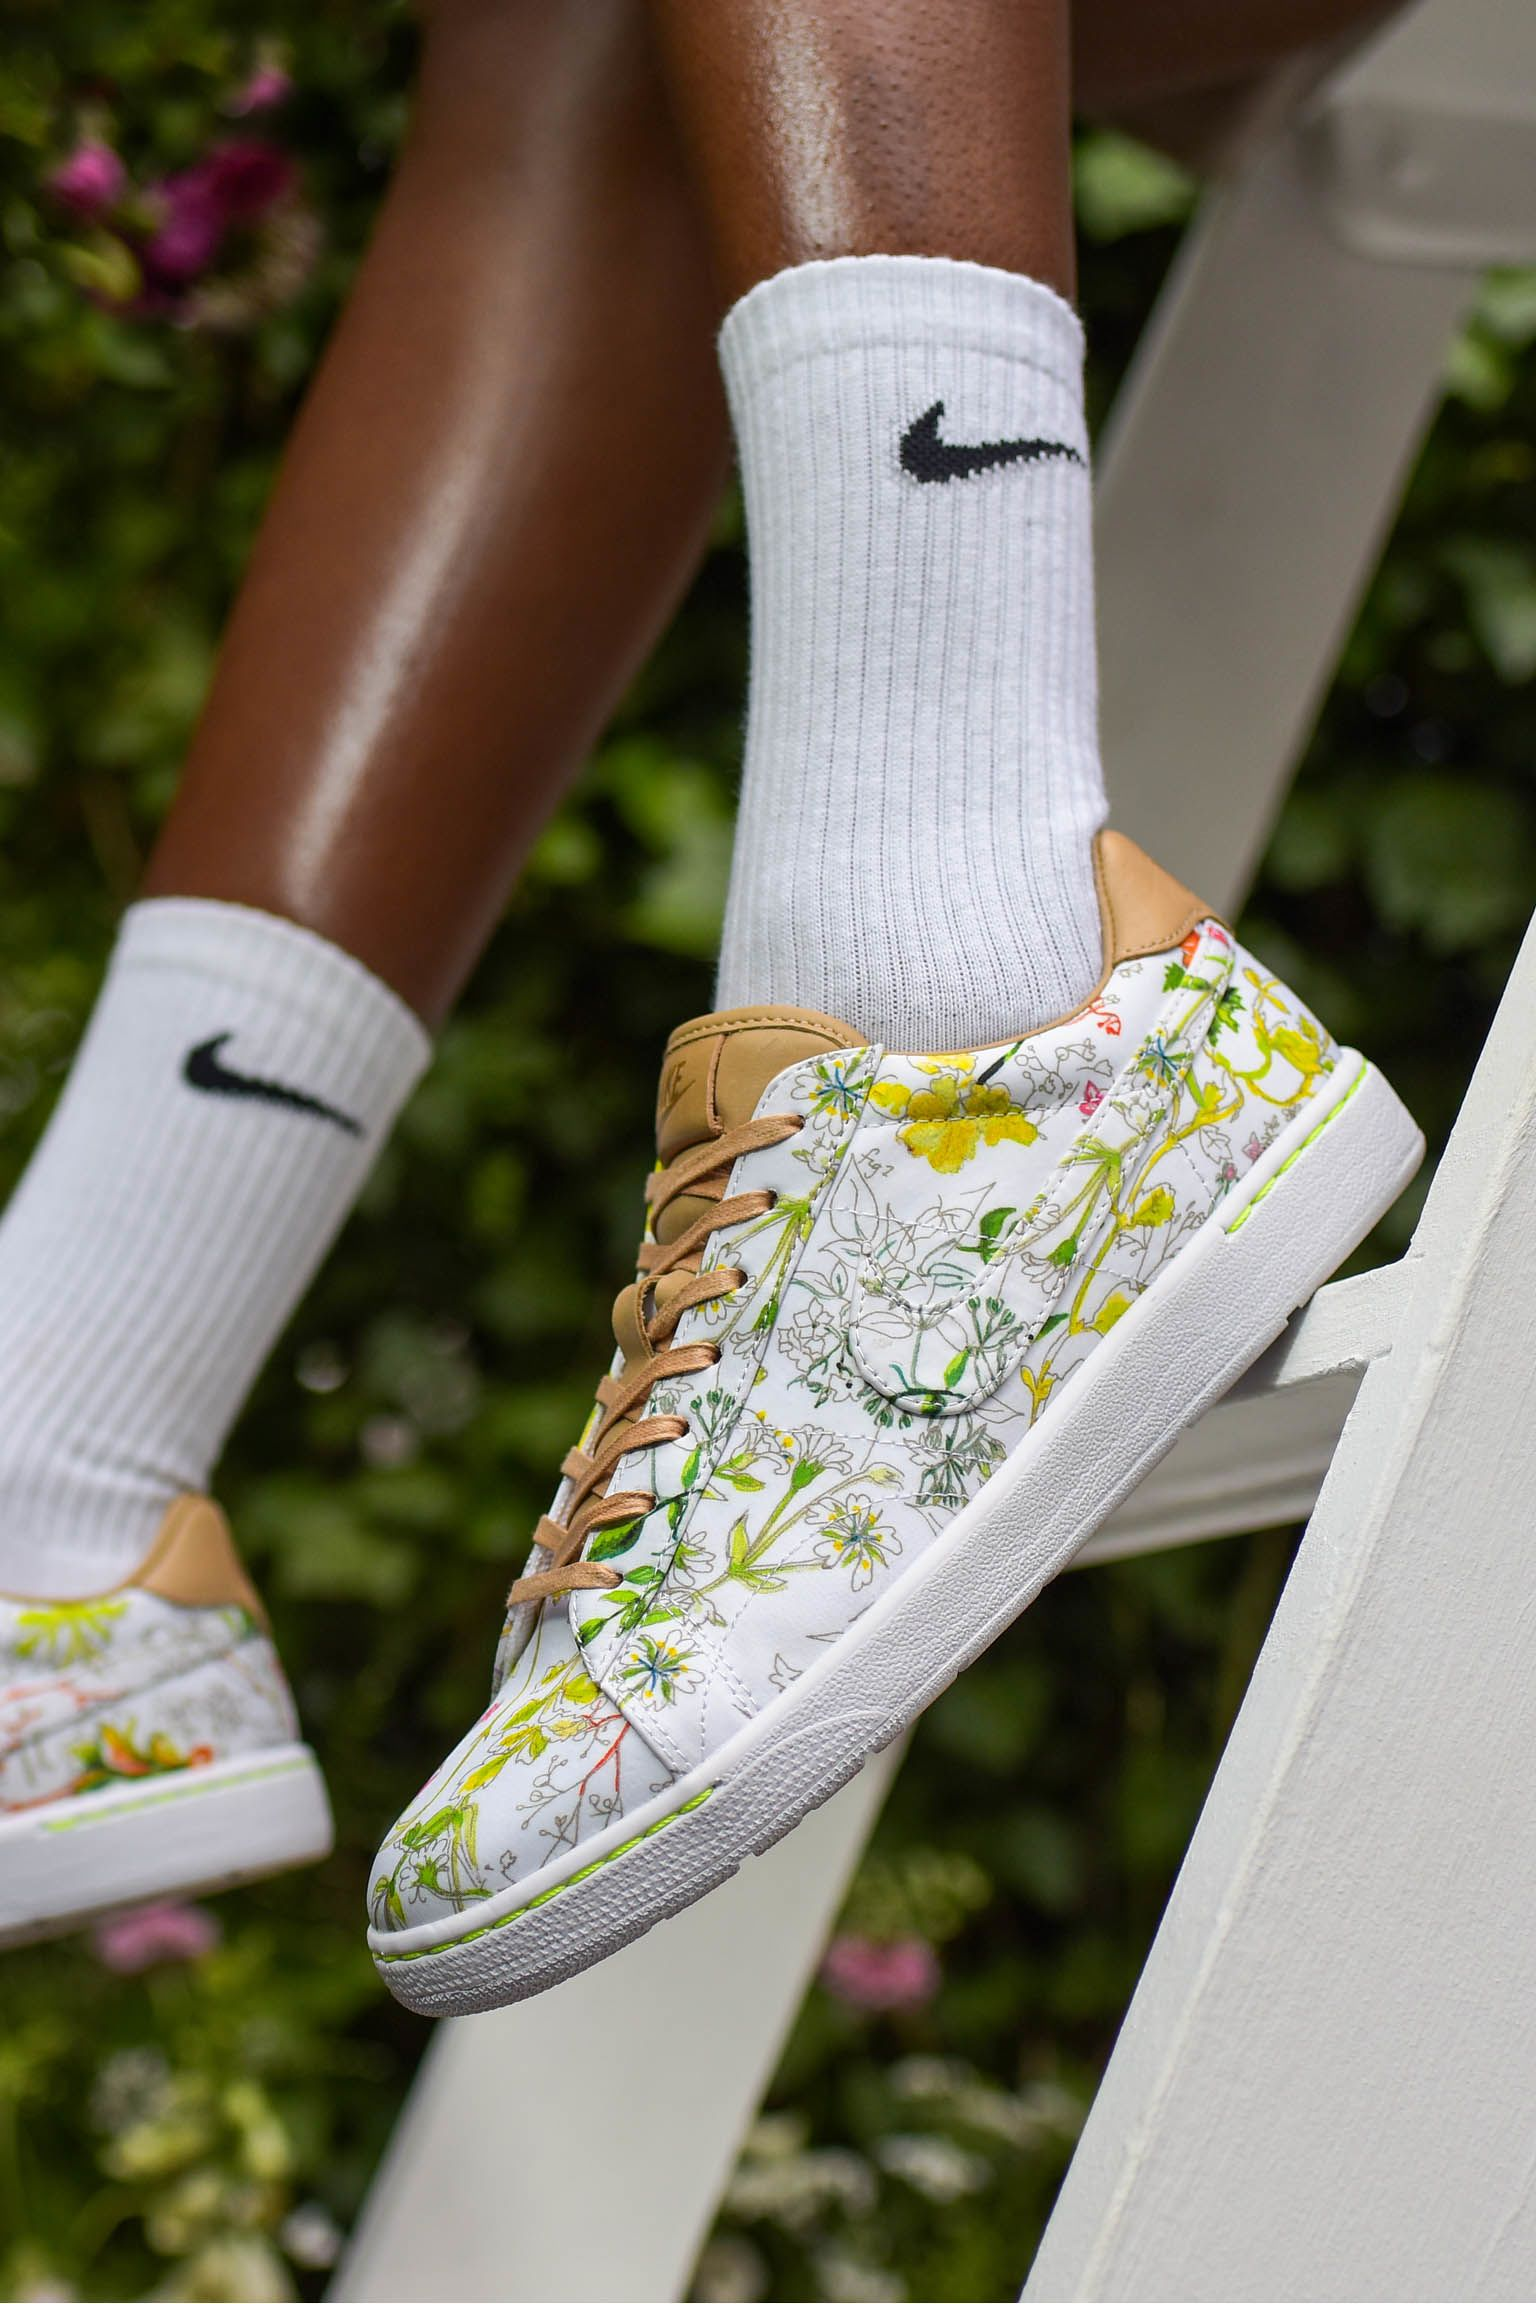 Kolekce NikeCourt x Liberty: Dawn Meadow